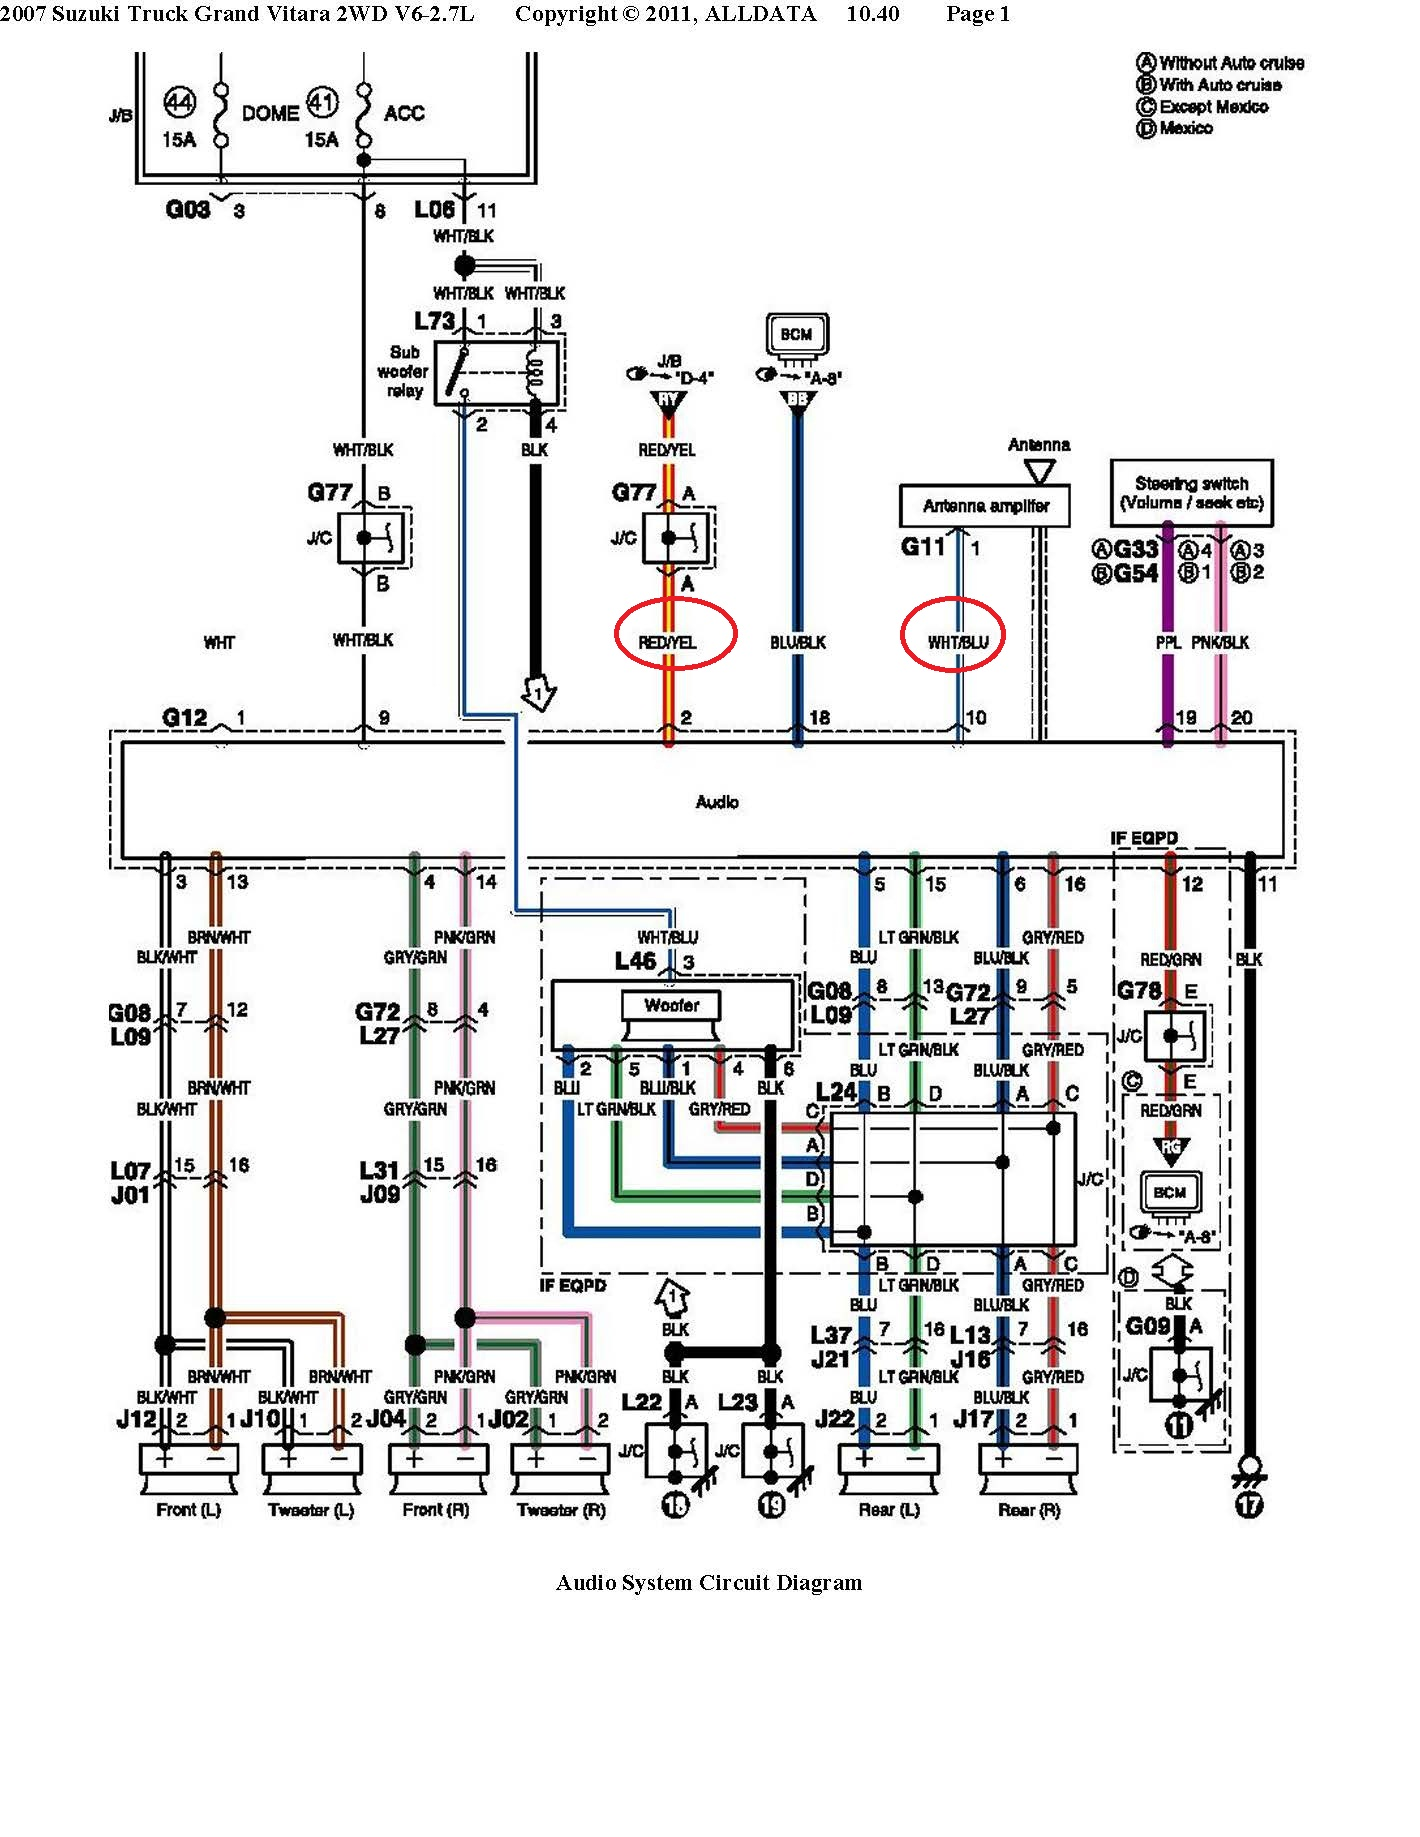 hight resolution of suzuki car radio stereo audio wiring diagram autoradio 2007 freightliner columbia wiring schematic 2005 freightliner columbia electrical diagram